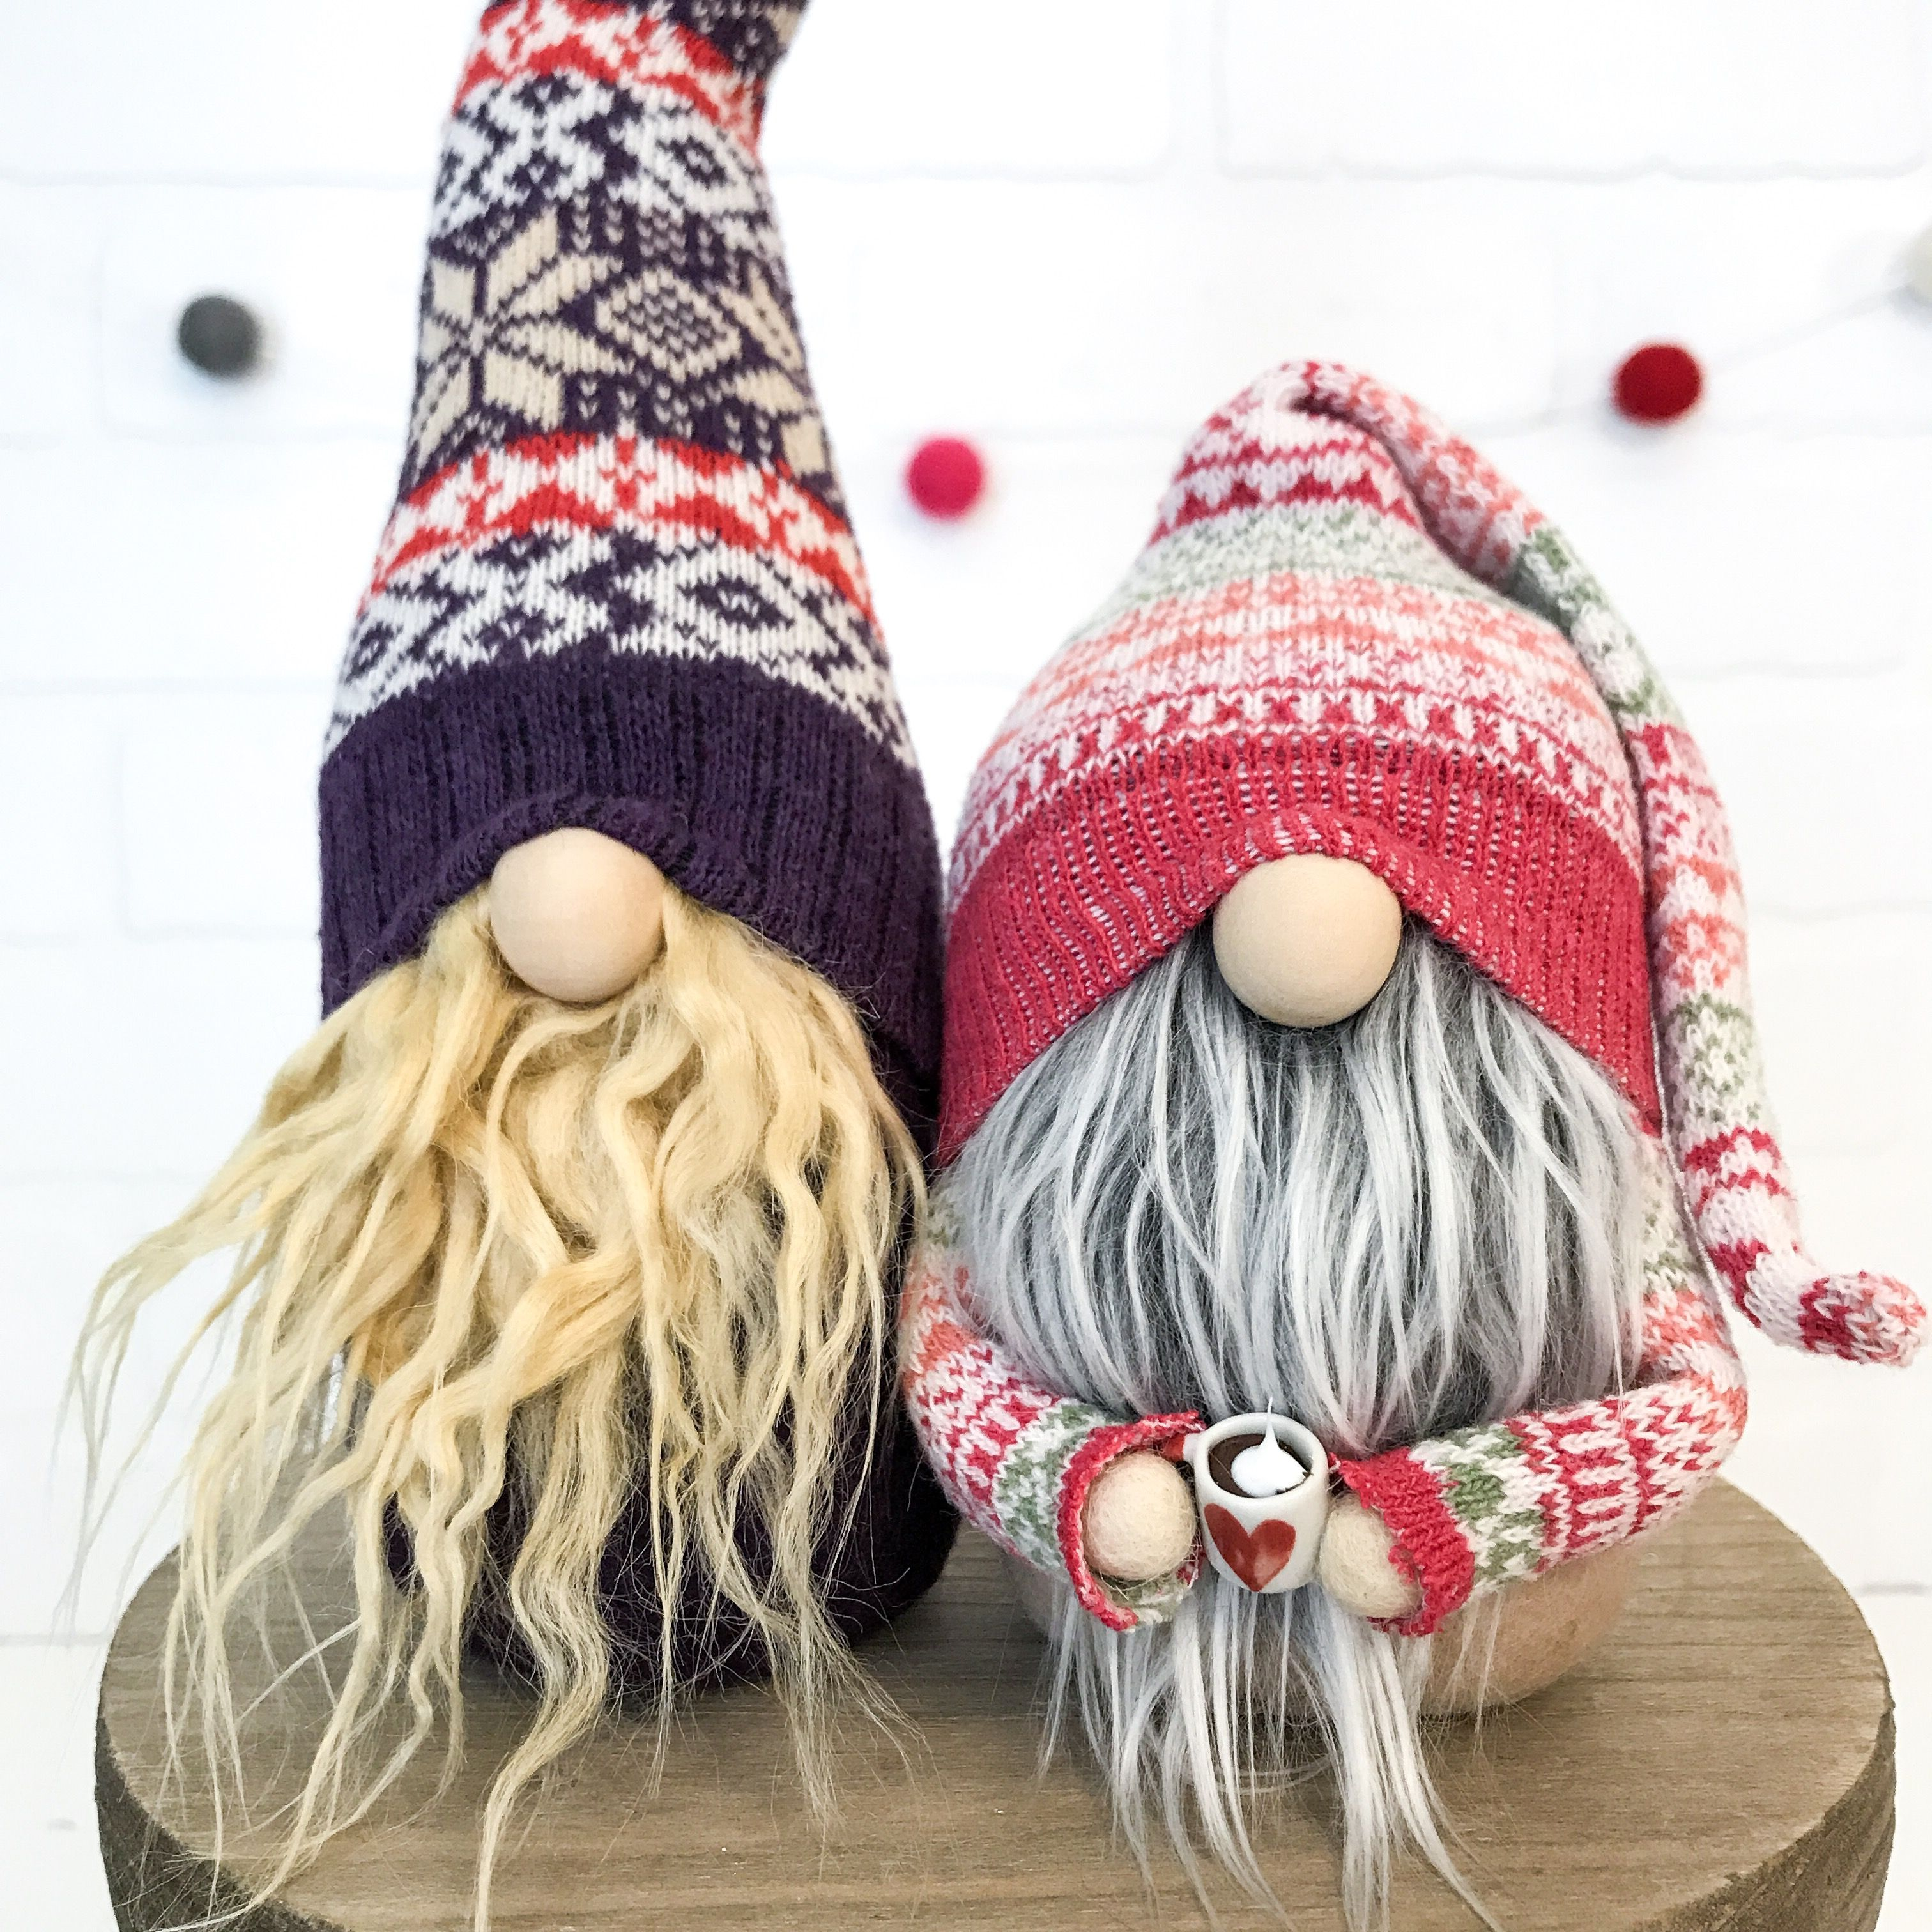 Hand-crafted Sweater Gnome